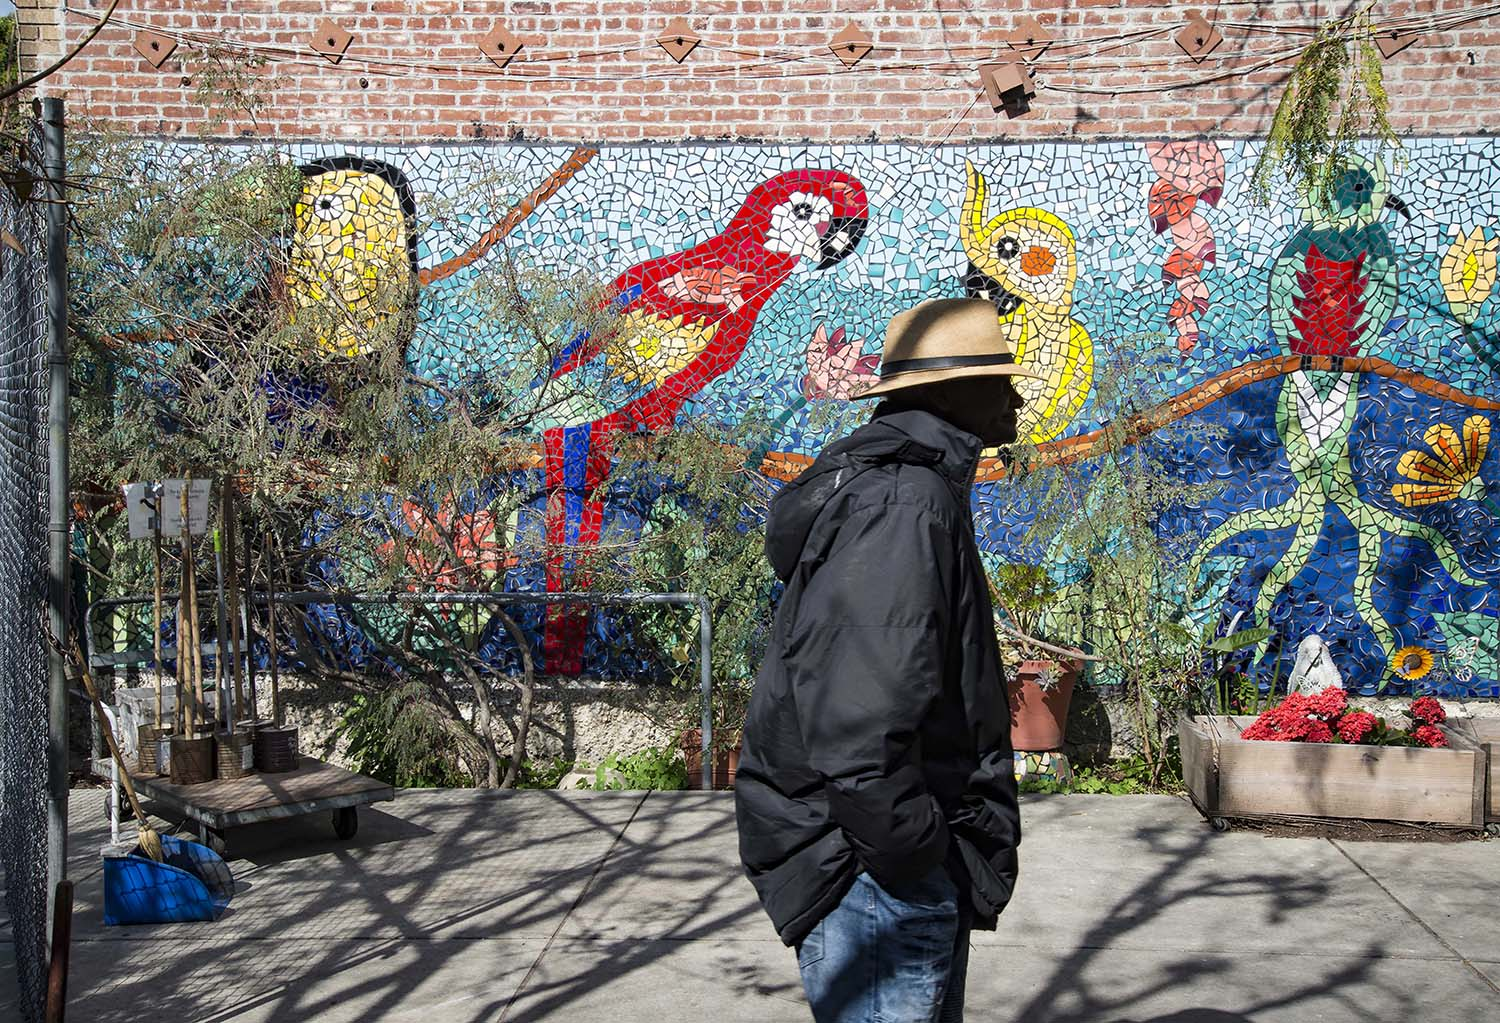 Skid-row-hippie-kitchen-mosaic-birds.jpg